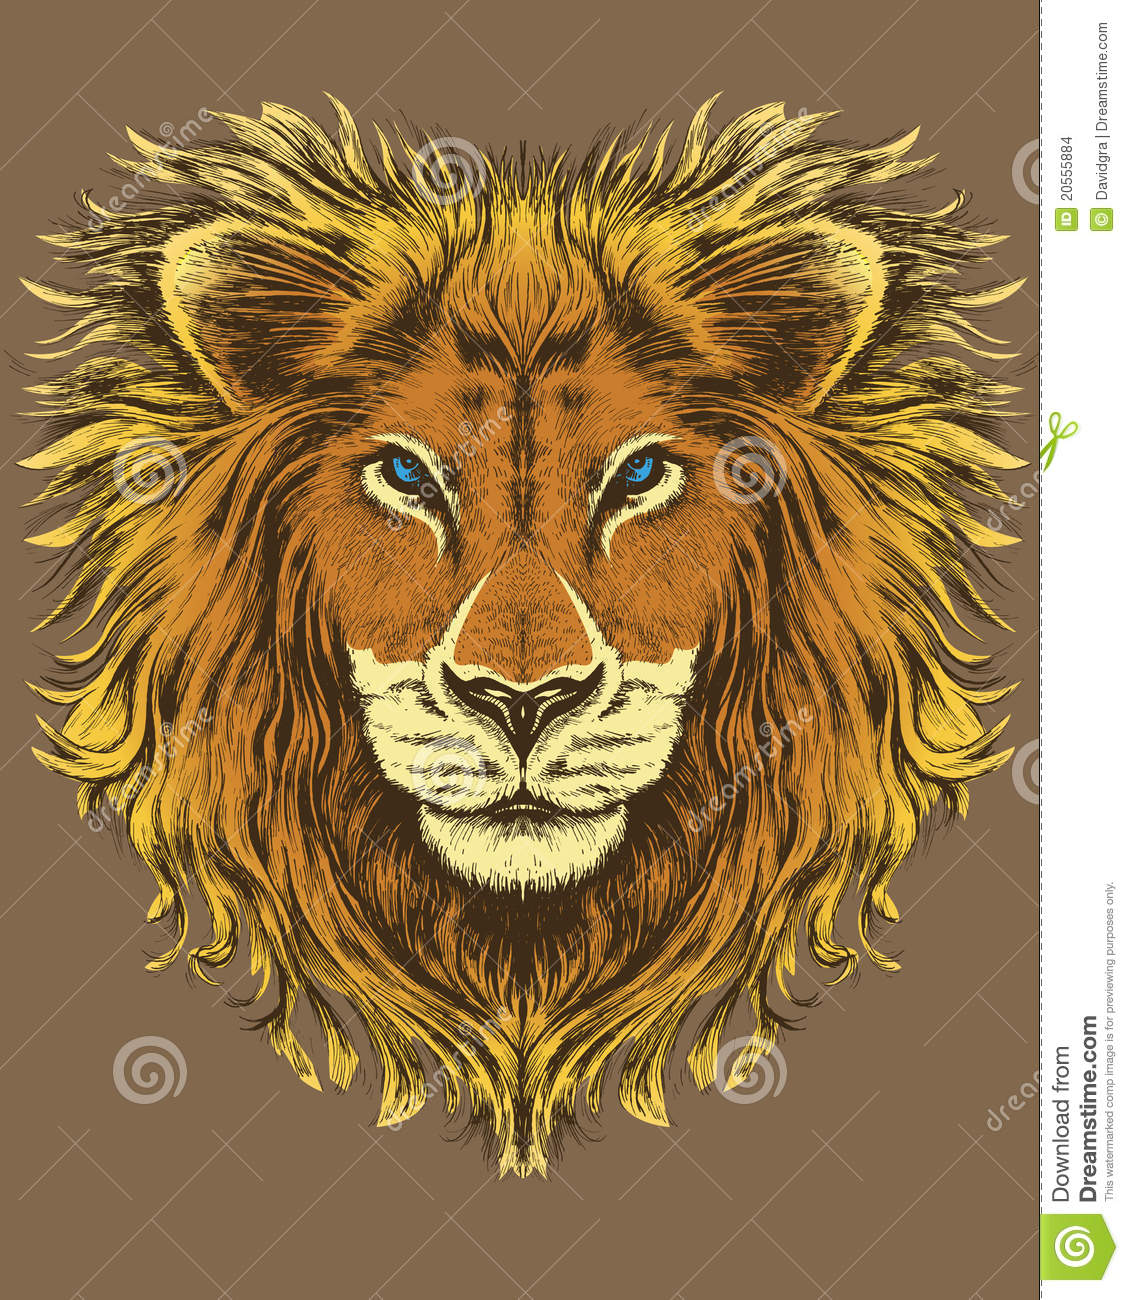 Illustration Of A Lion Stock Images - Image: 20555884